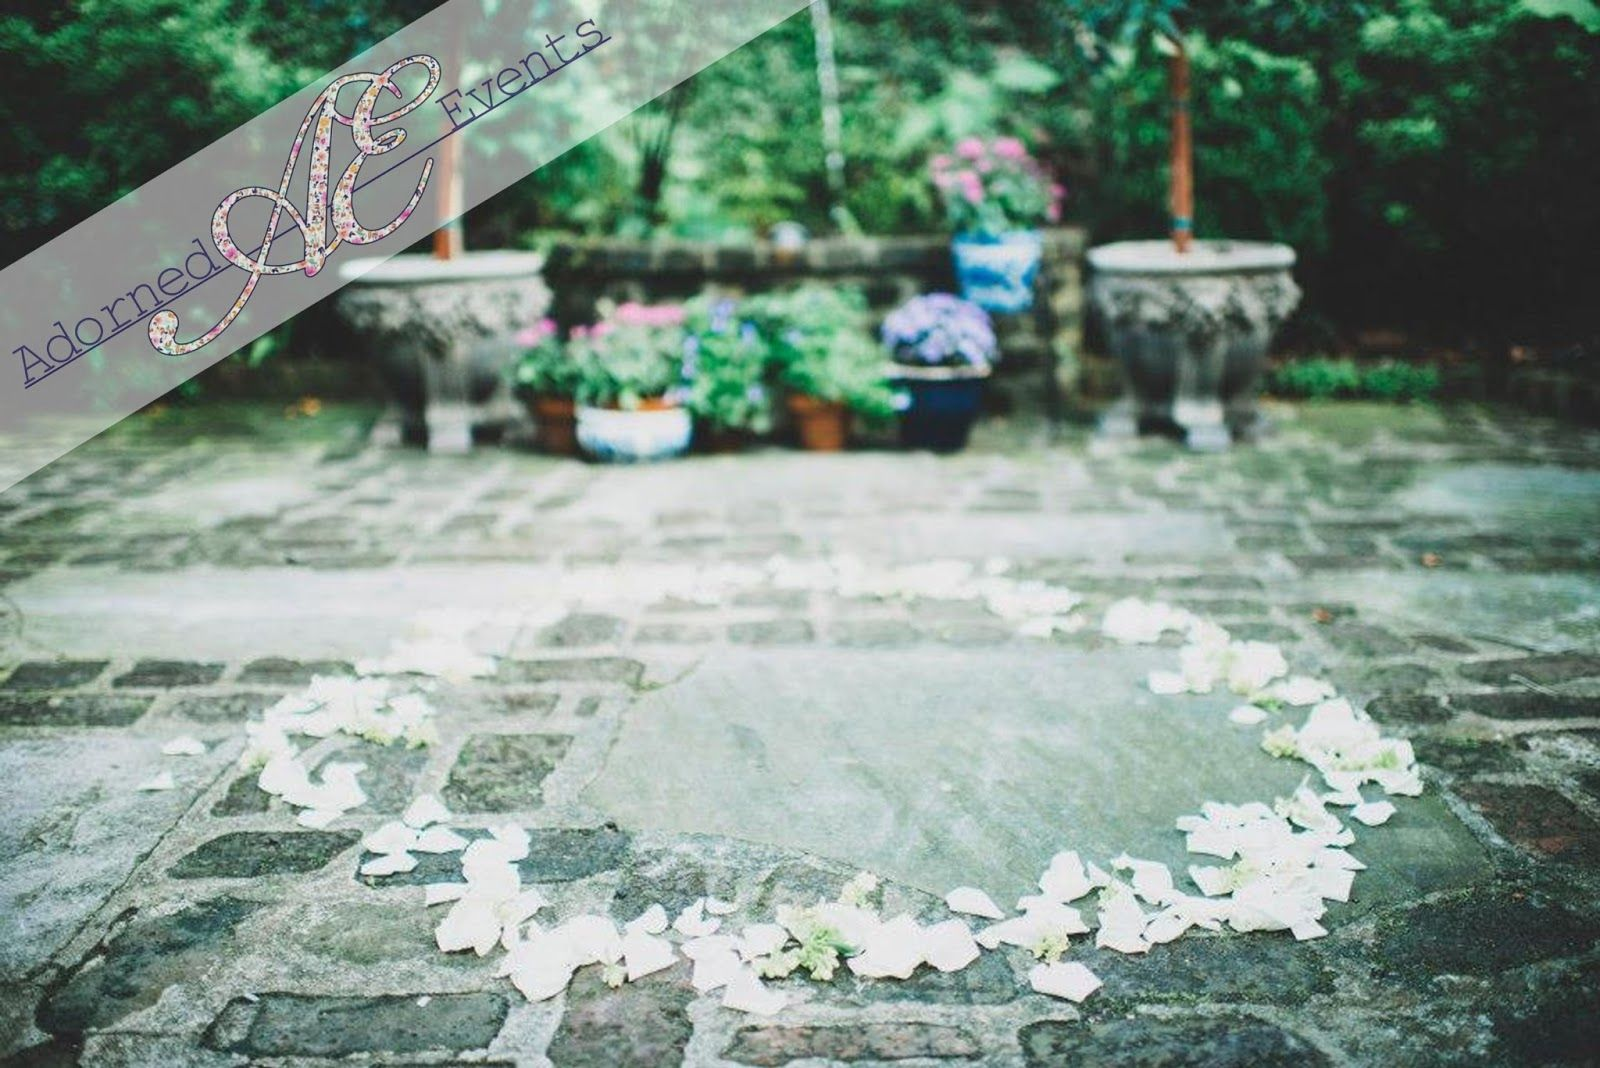 A ring of petals in place of an arch at this garden wedding  http://www.adornedbyadorn.blogspot.com/  Photography by Tim Will Photography